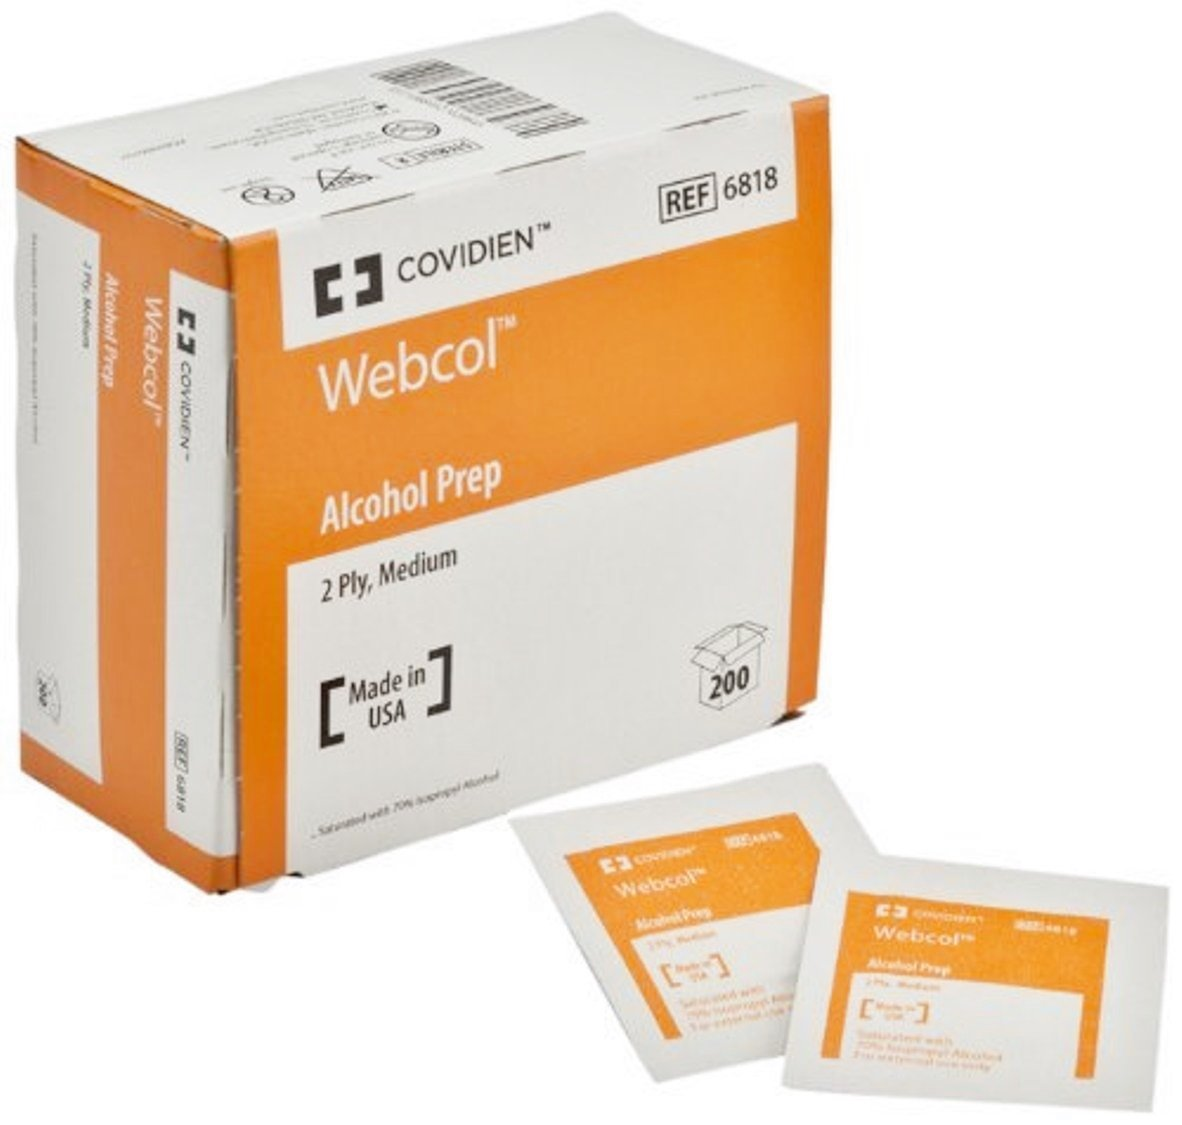 Special Sale - 5 Boxes of 200 - WEBCOL Alcohol Prep Pads KND6818 KENDALLCOVIDIEN MP-KND6818 Box